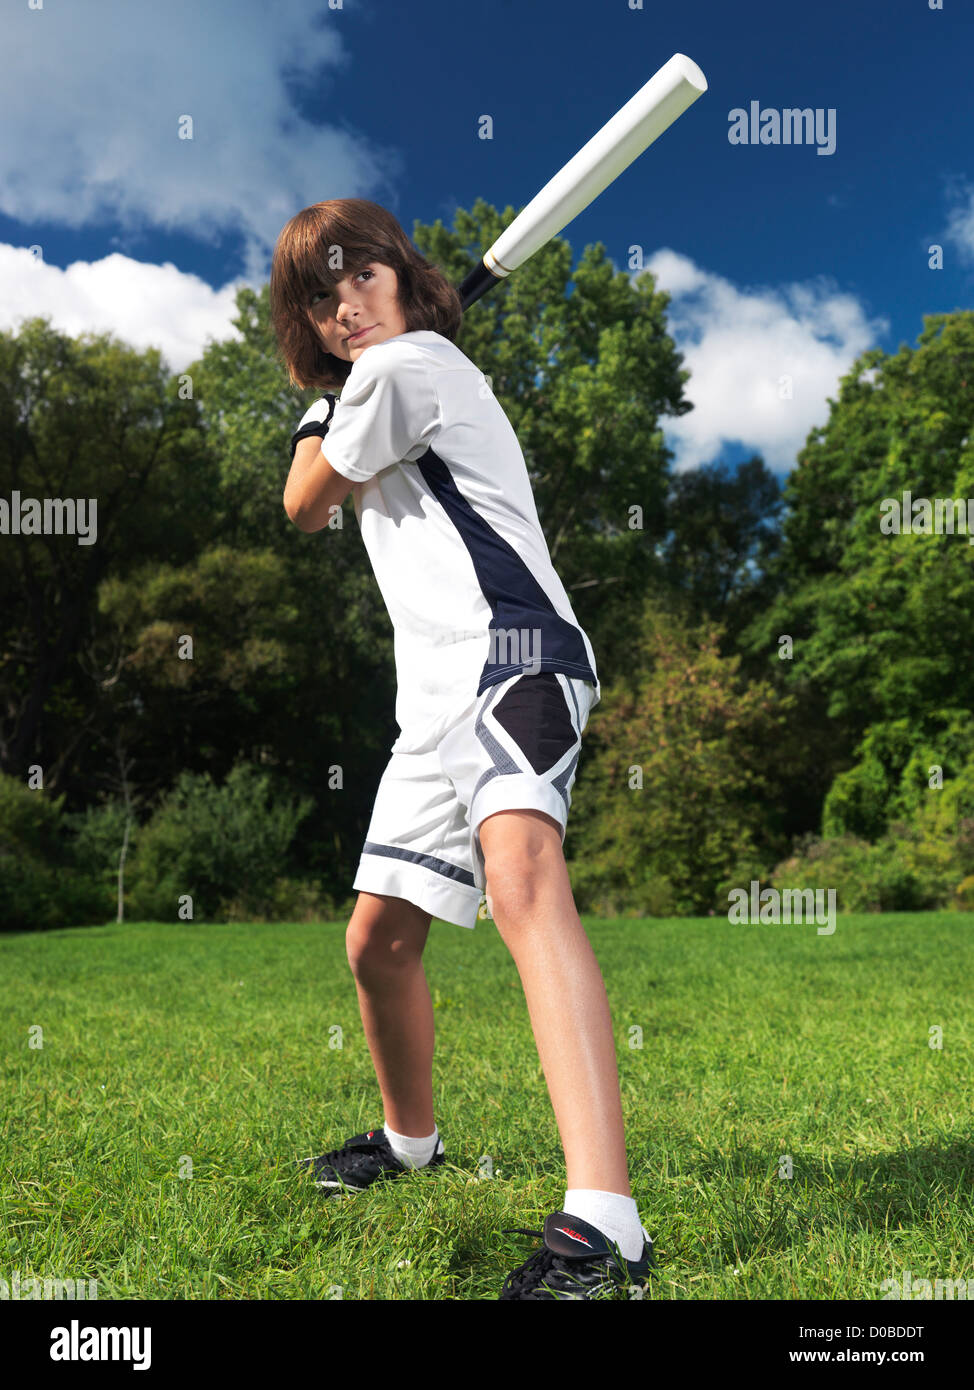 Action portrait of a ten year old boy with baseball bat practicing the game. Sports and children active lifestyle. - Stock Image